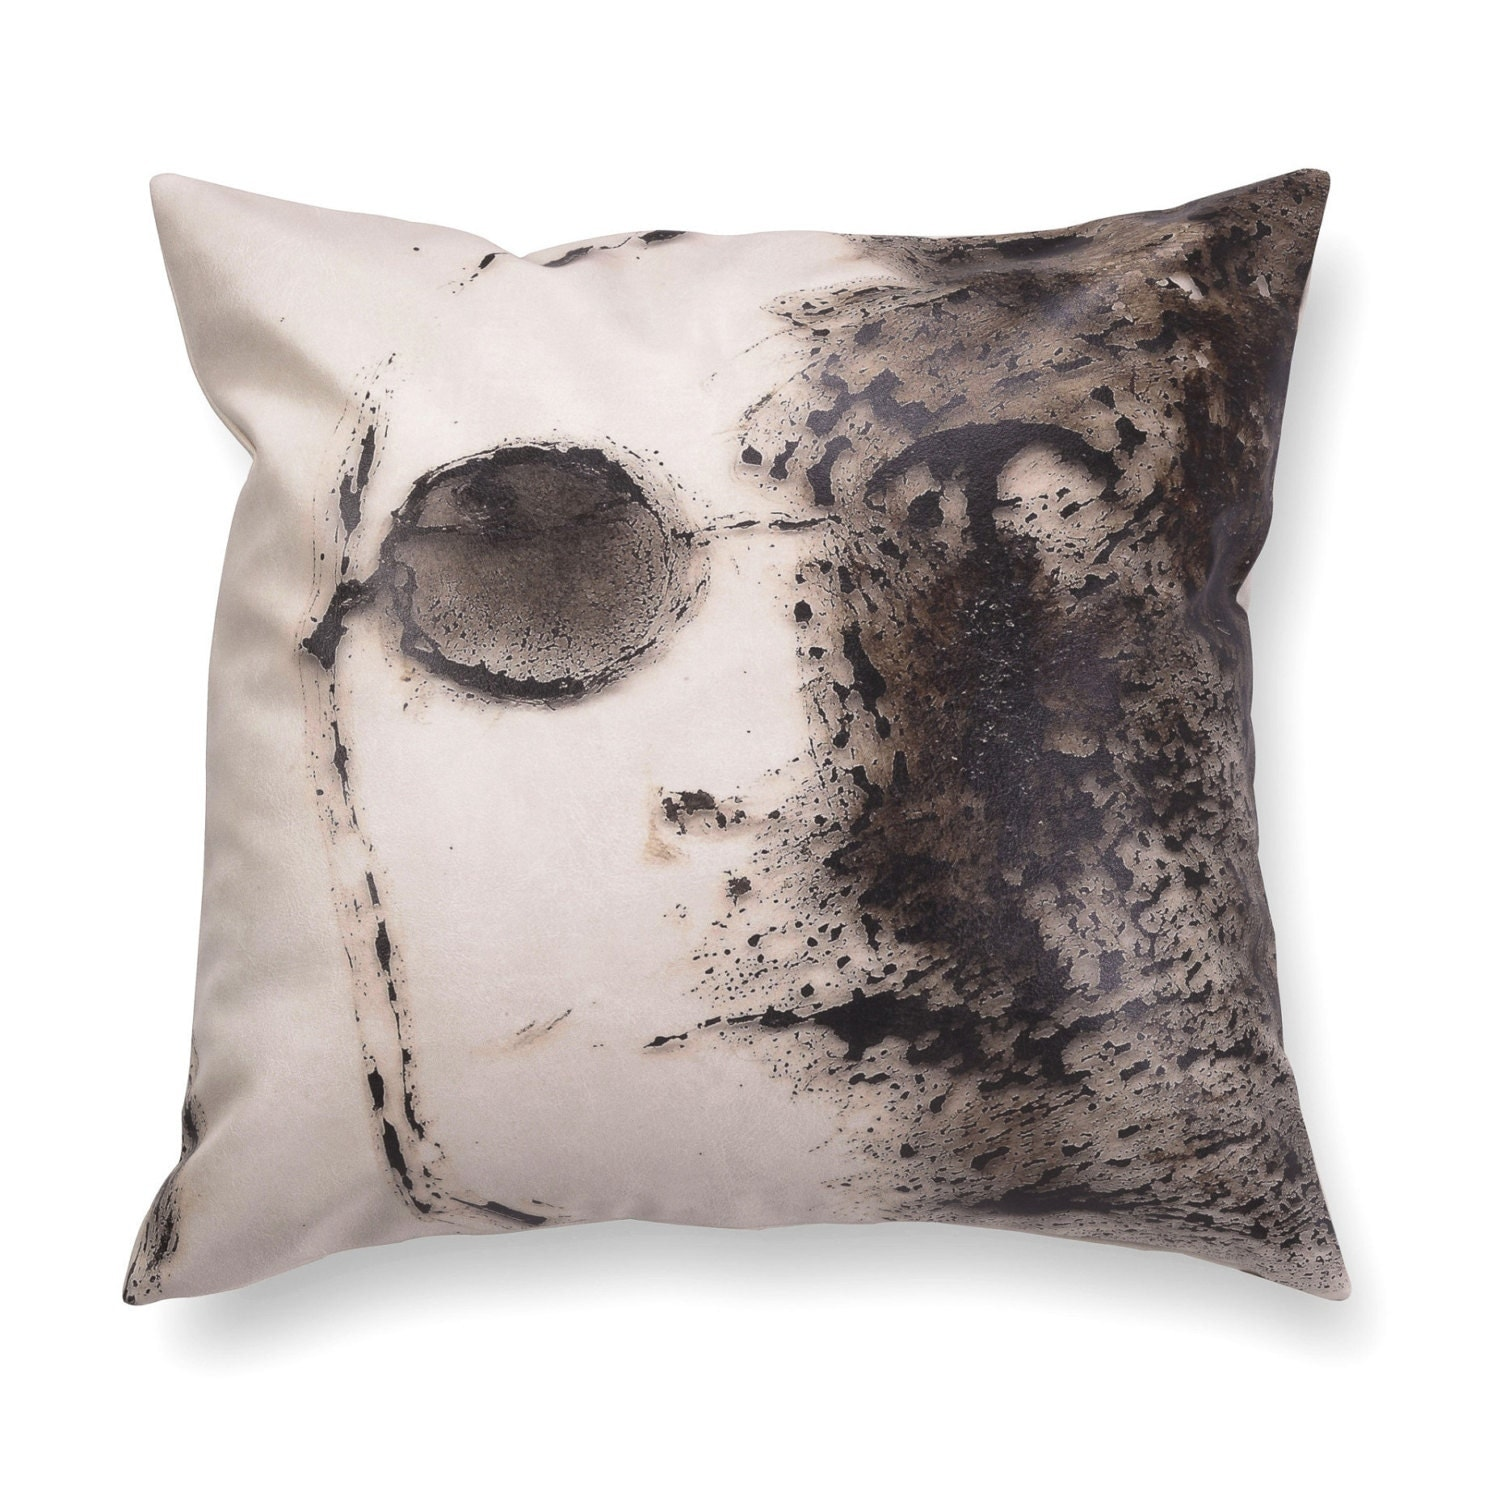 White Leather Throw Pillow : Decorative pillow black and white pillow. leather cushion